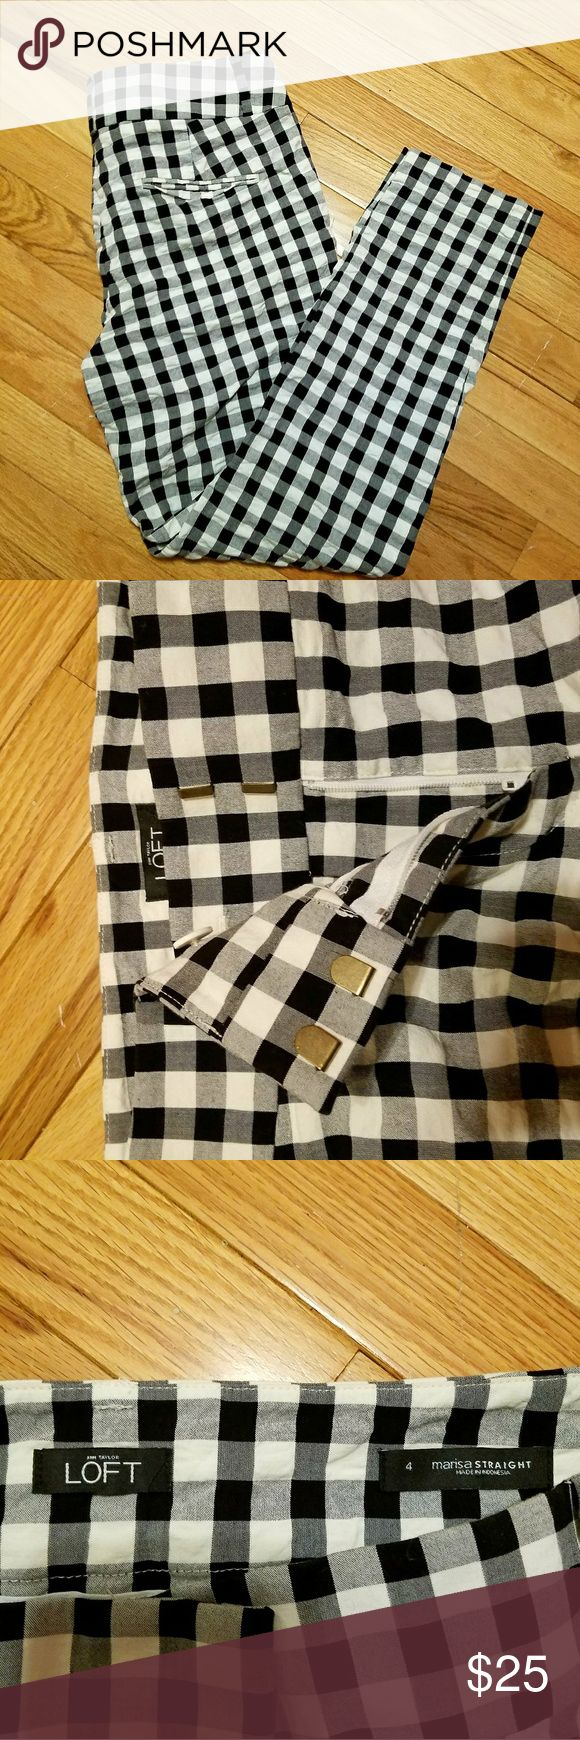 Anne Taylor Loft Gingham Pants Anne Taylor Loft Marisa Straight Leg Pants. Size 4. Only worn a few times, great condition. LOFT Pants Straight Leg